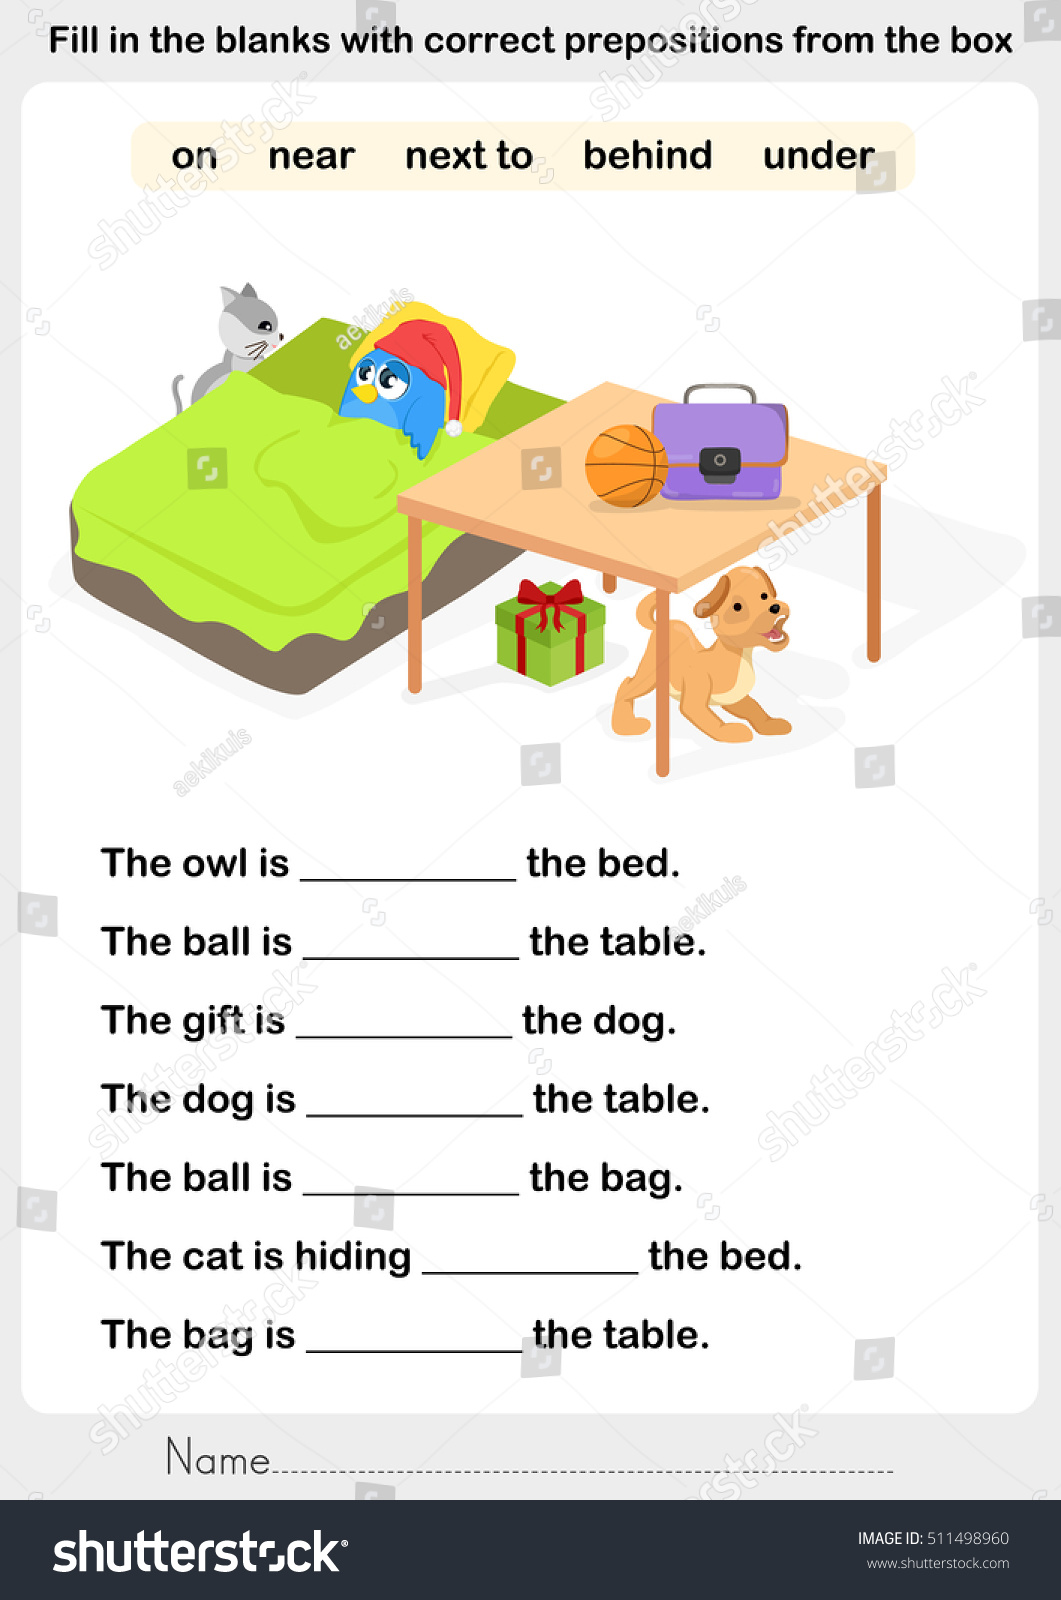 Fill Blanks Correct Prepositions Preposition Worksheet